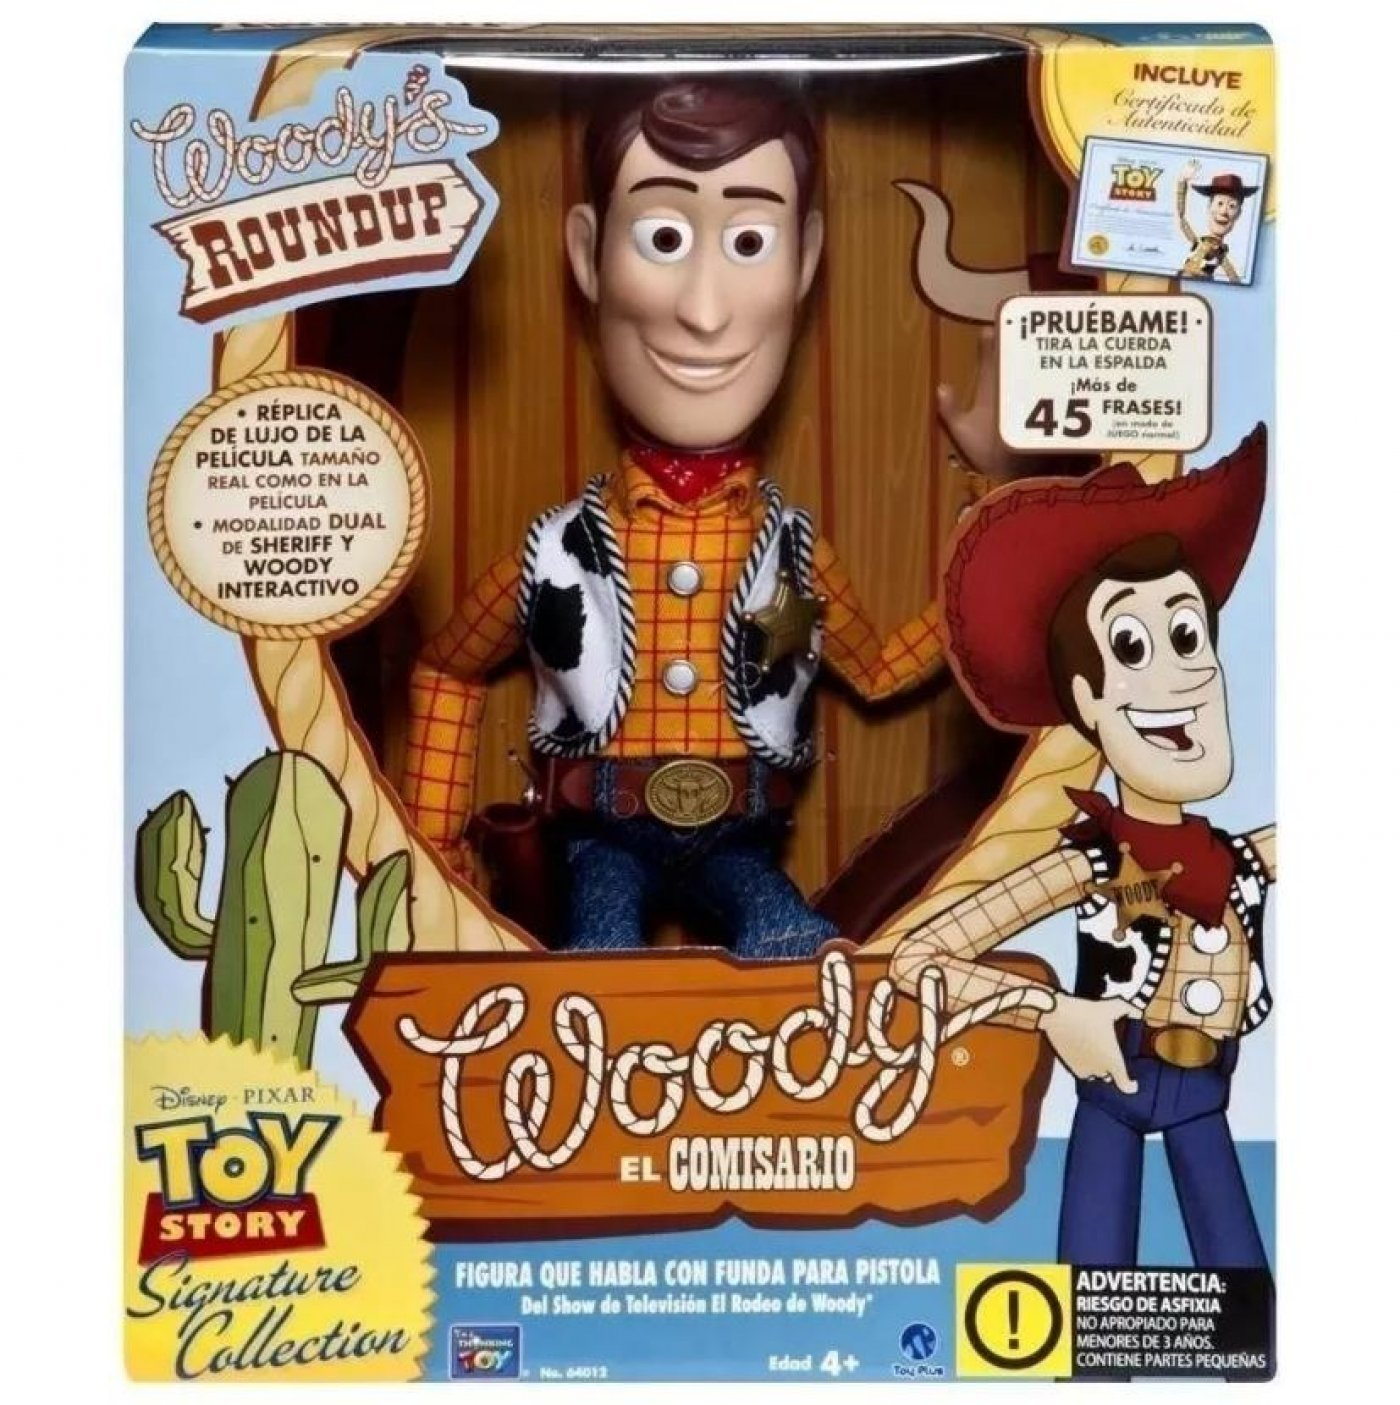 Woody Interactivo Signature Collection Toy Story Habla 45 Frases